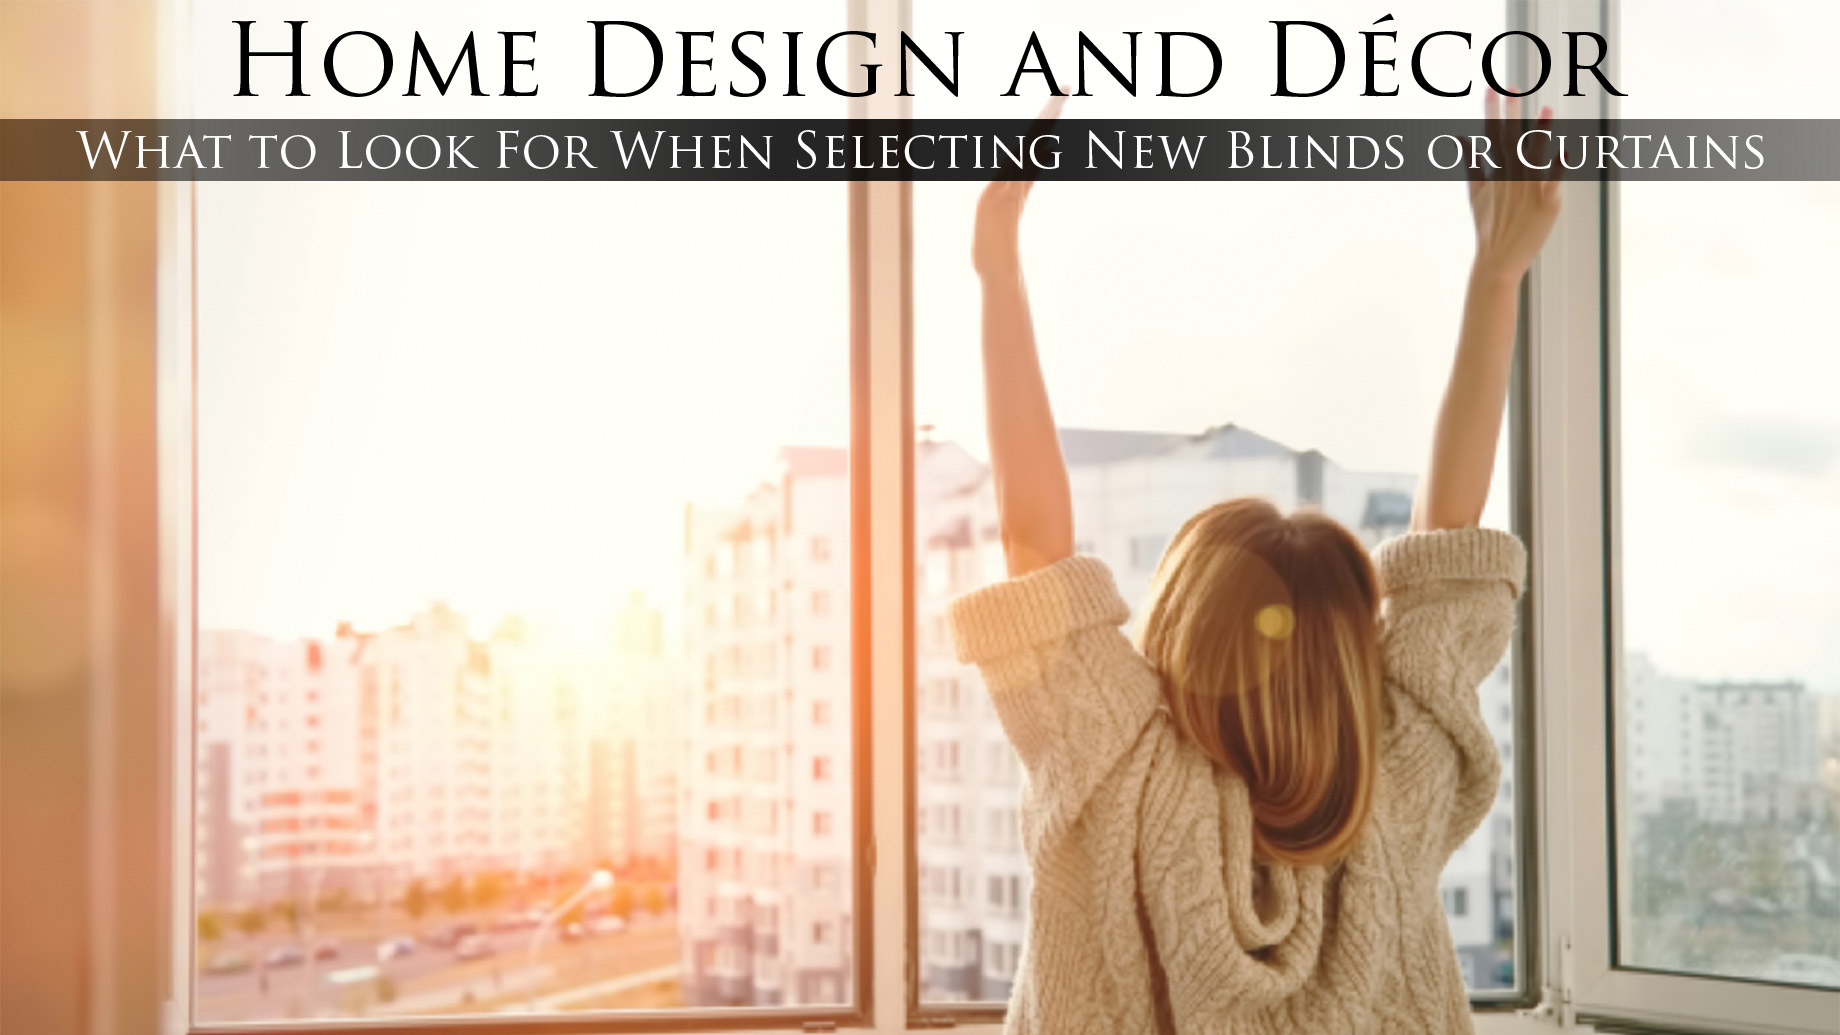 Home Design and Décor - What to Look For When Selecting New Blinds or Curtains